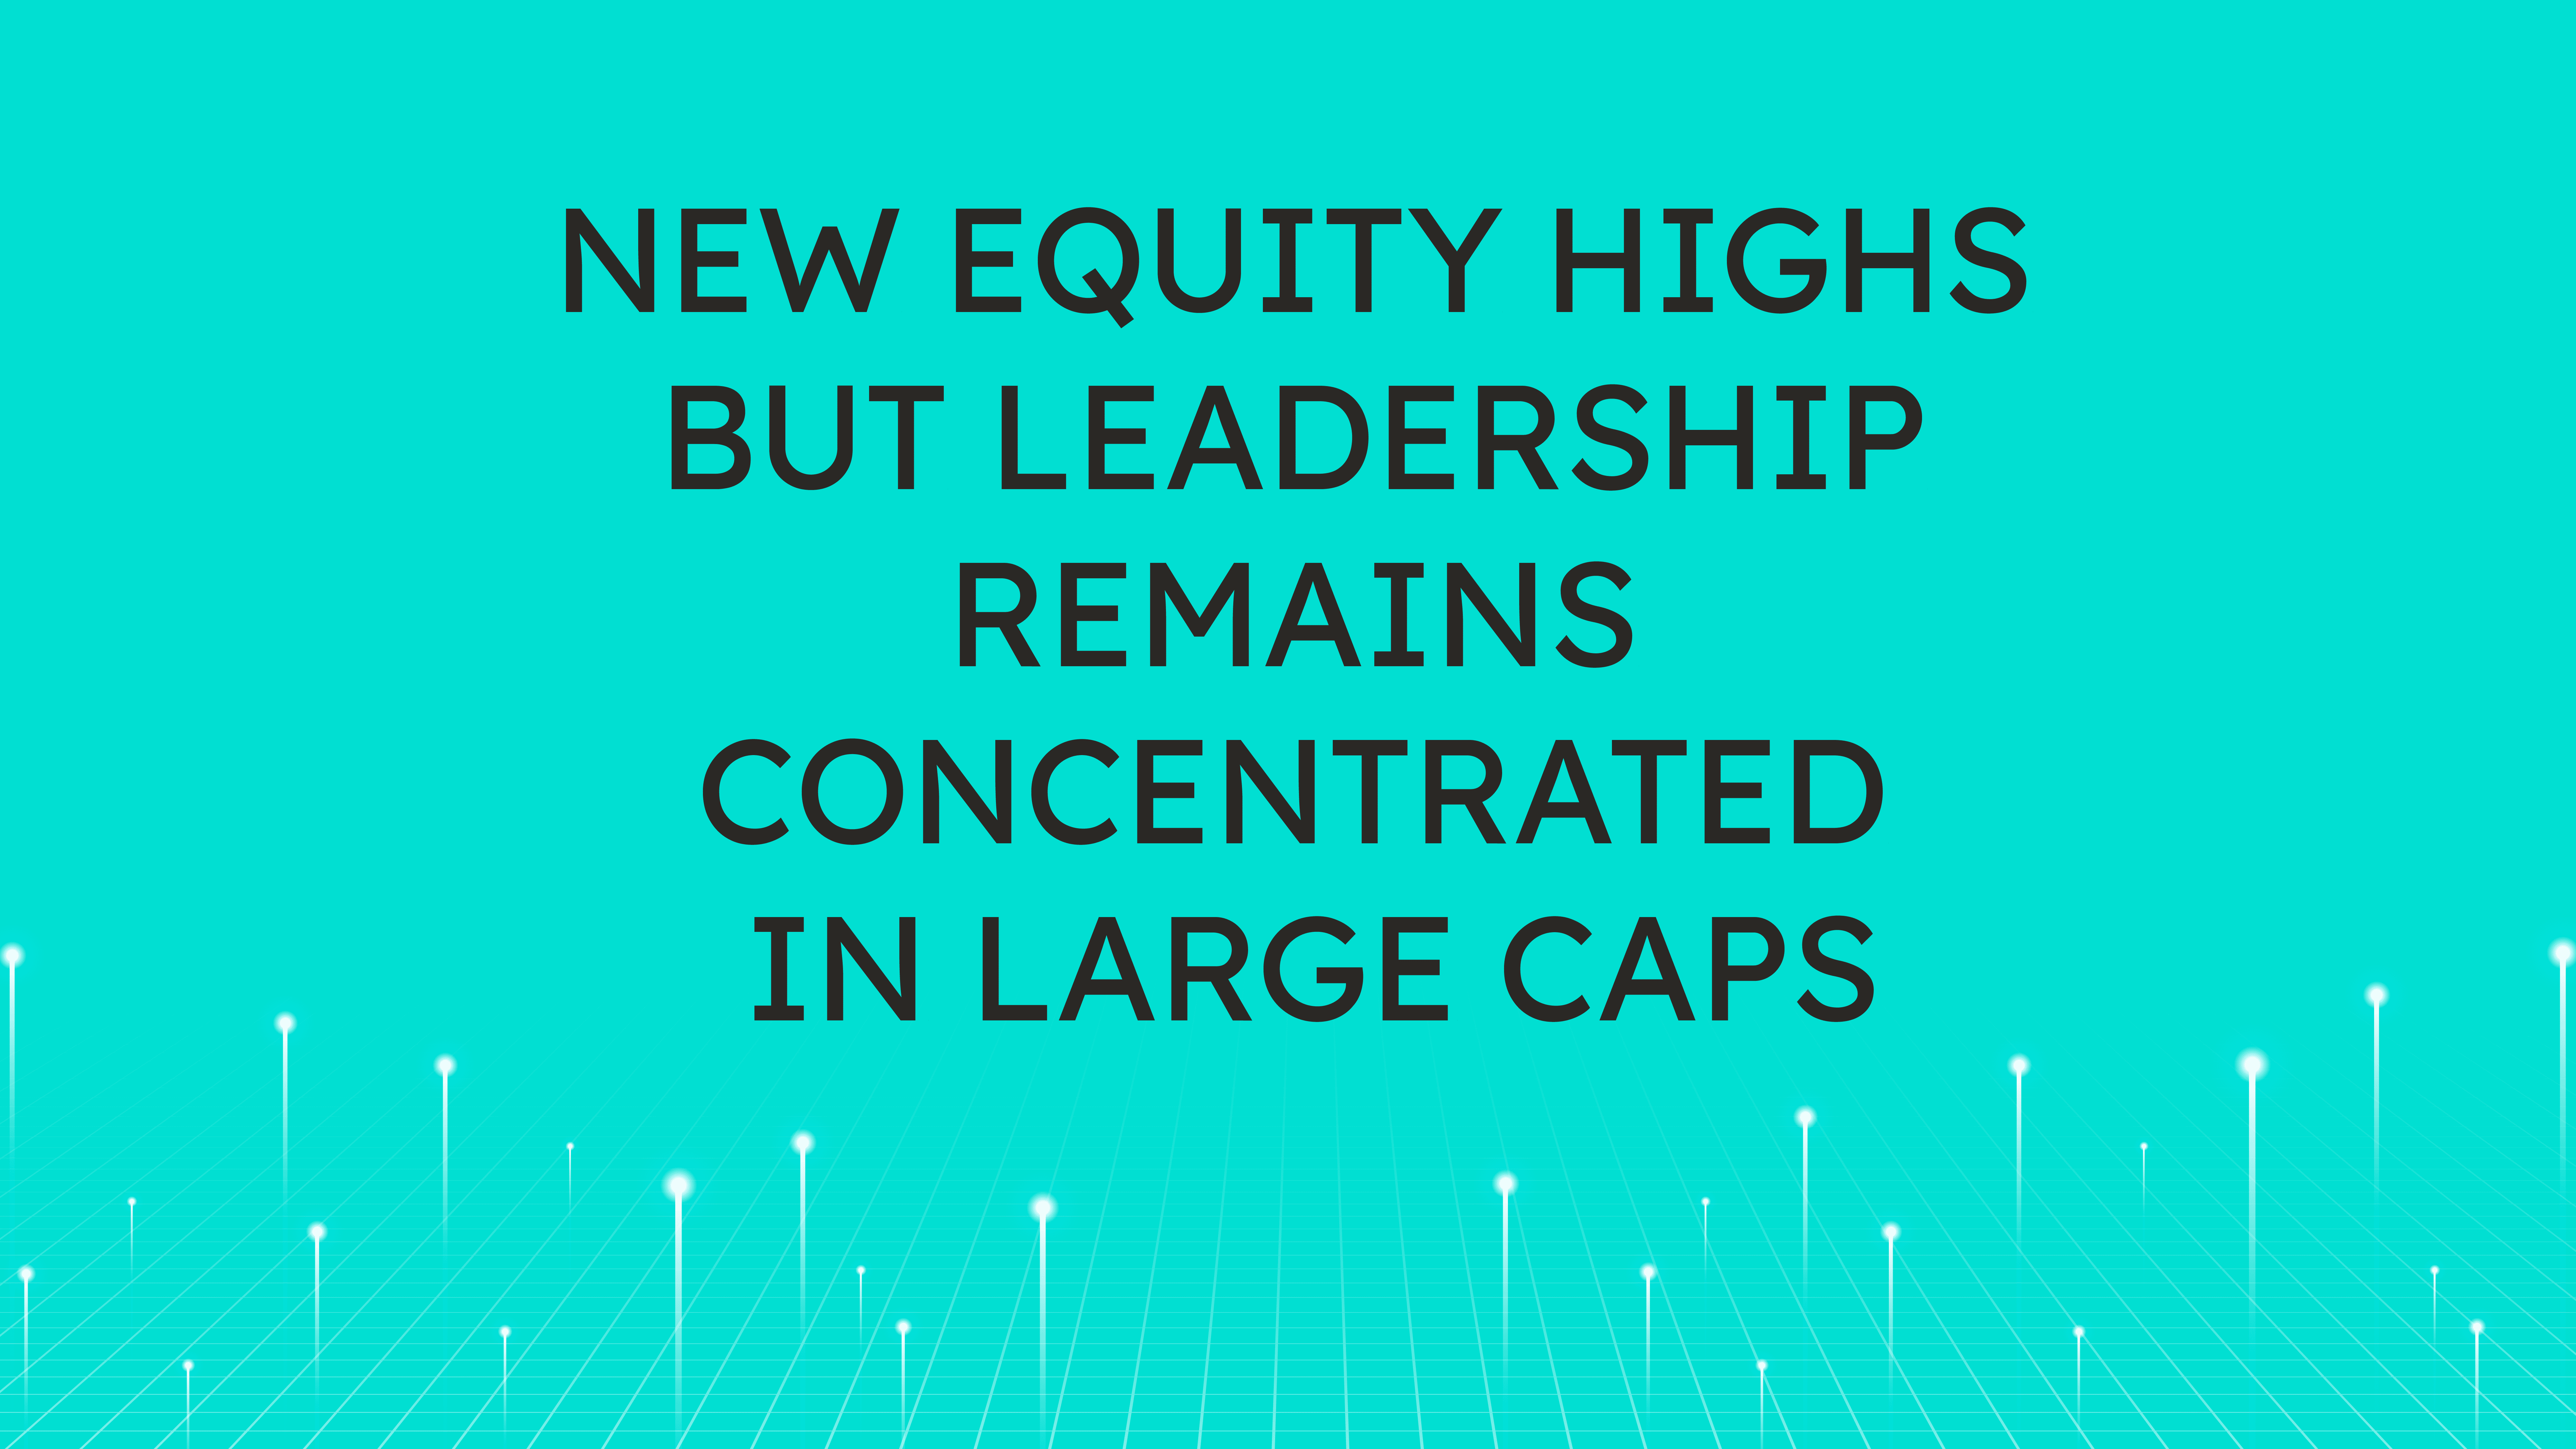 New Equity Highs but Leadership Remains Concentrated in Large Caps